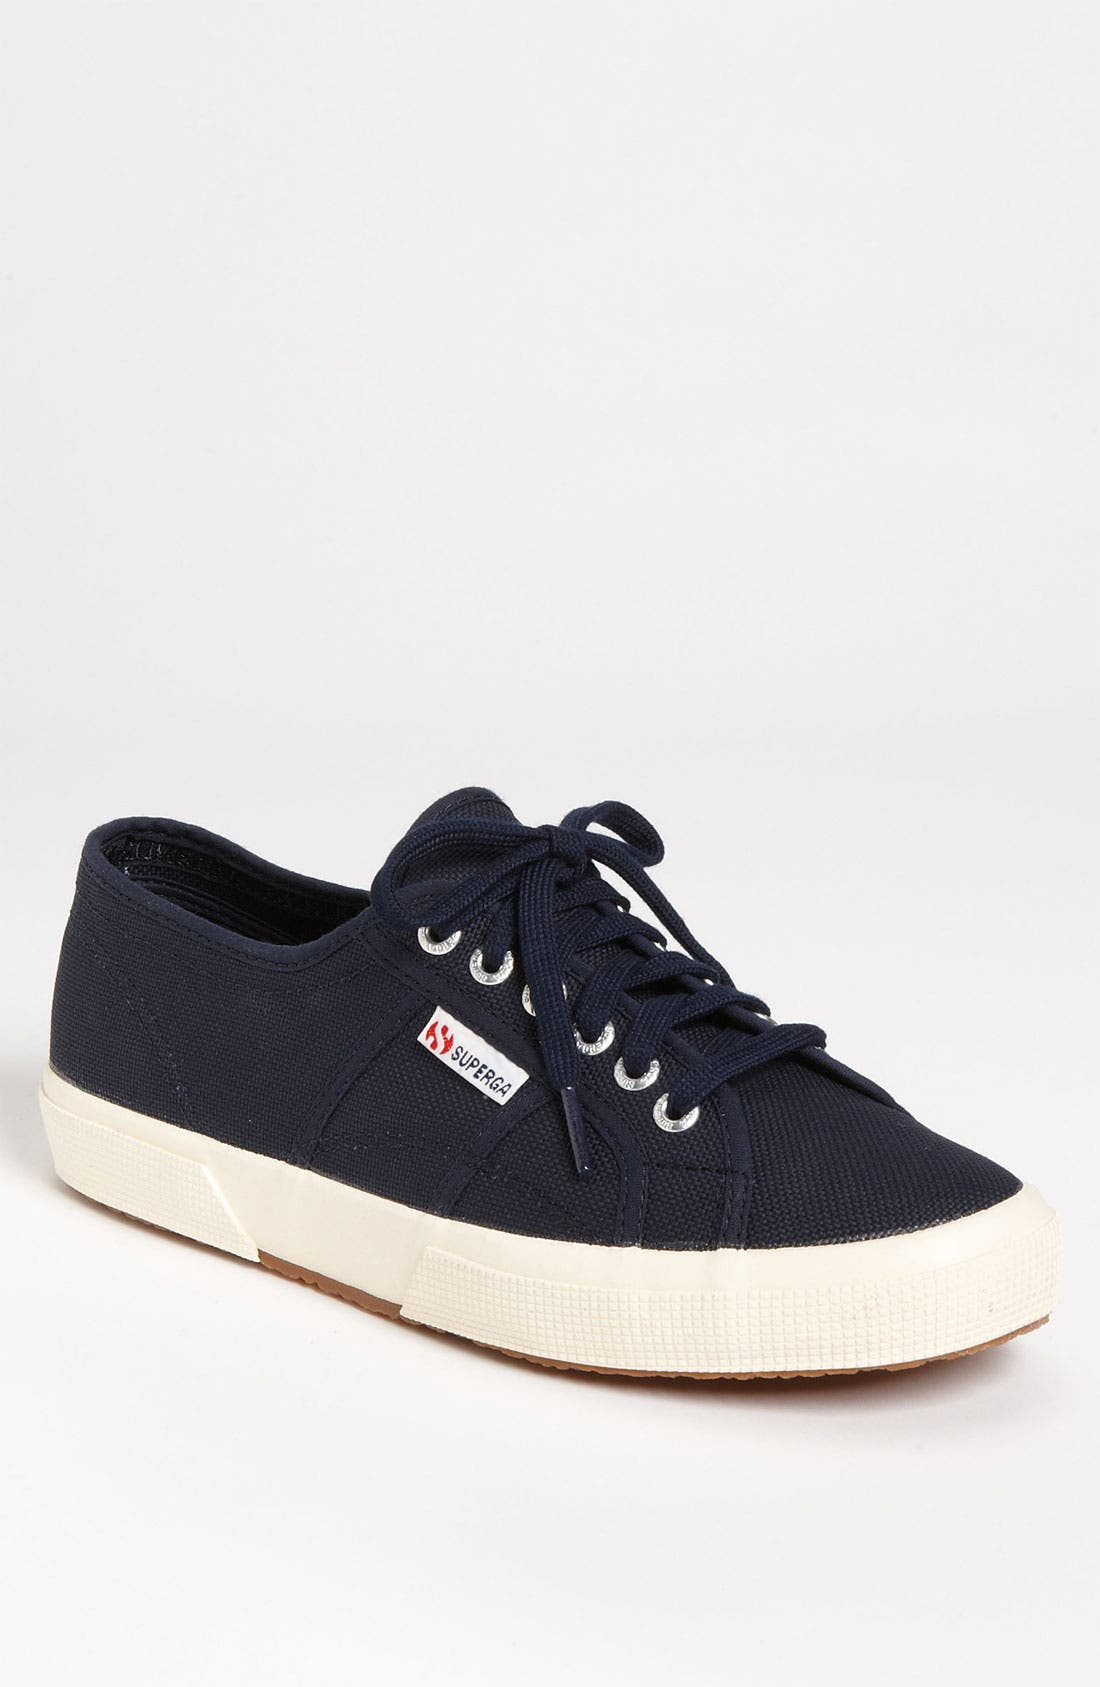 Main Image - Superga 'Cotu' Sneaker (Men)